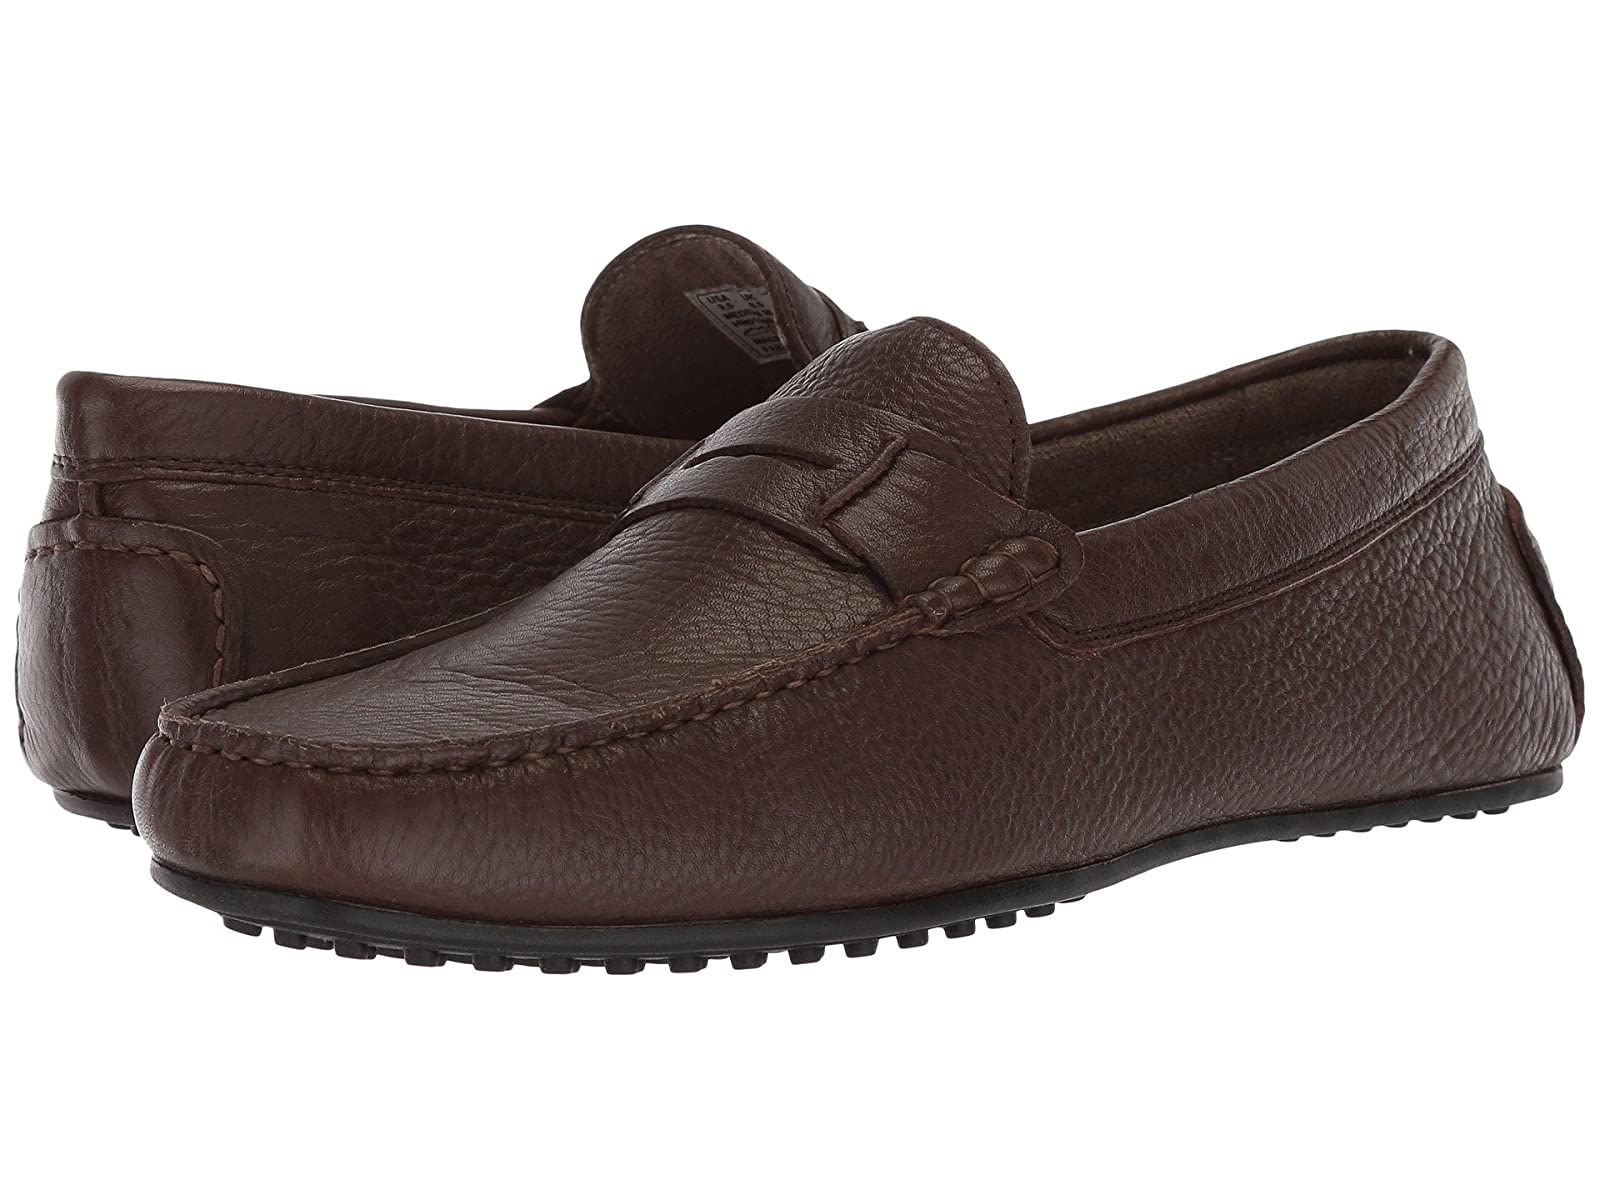 Hush Puppies Vastus PennyCheap and distinctive eye-catching shoes